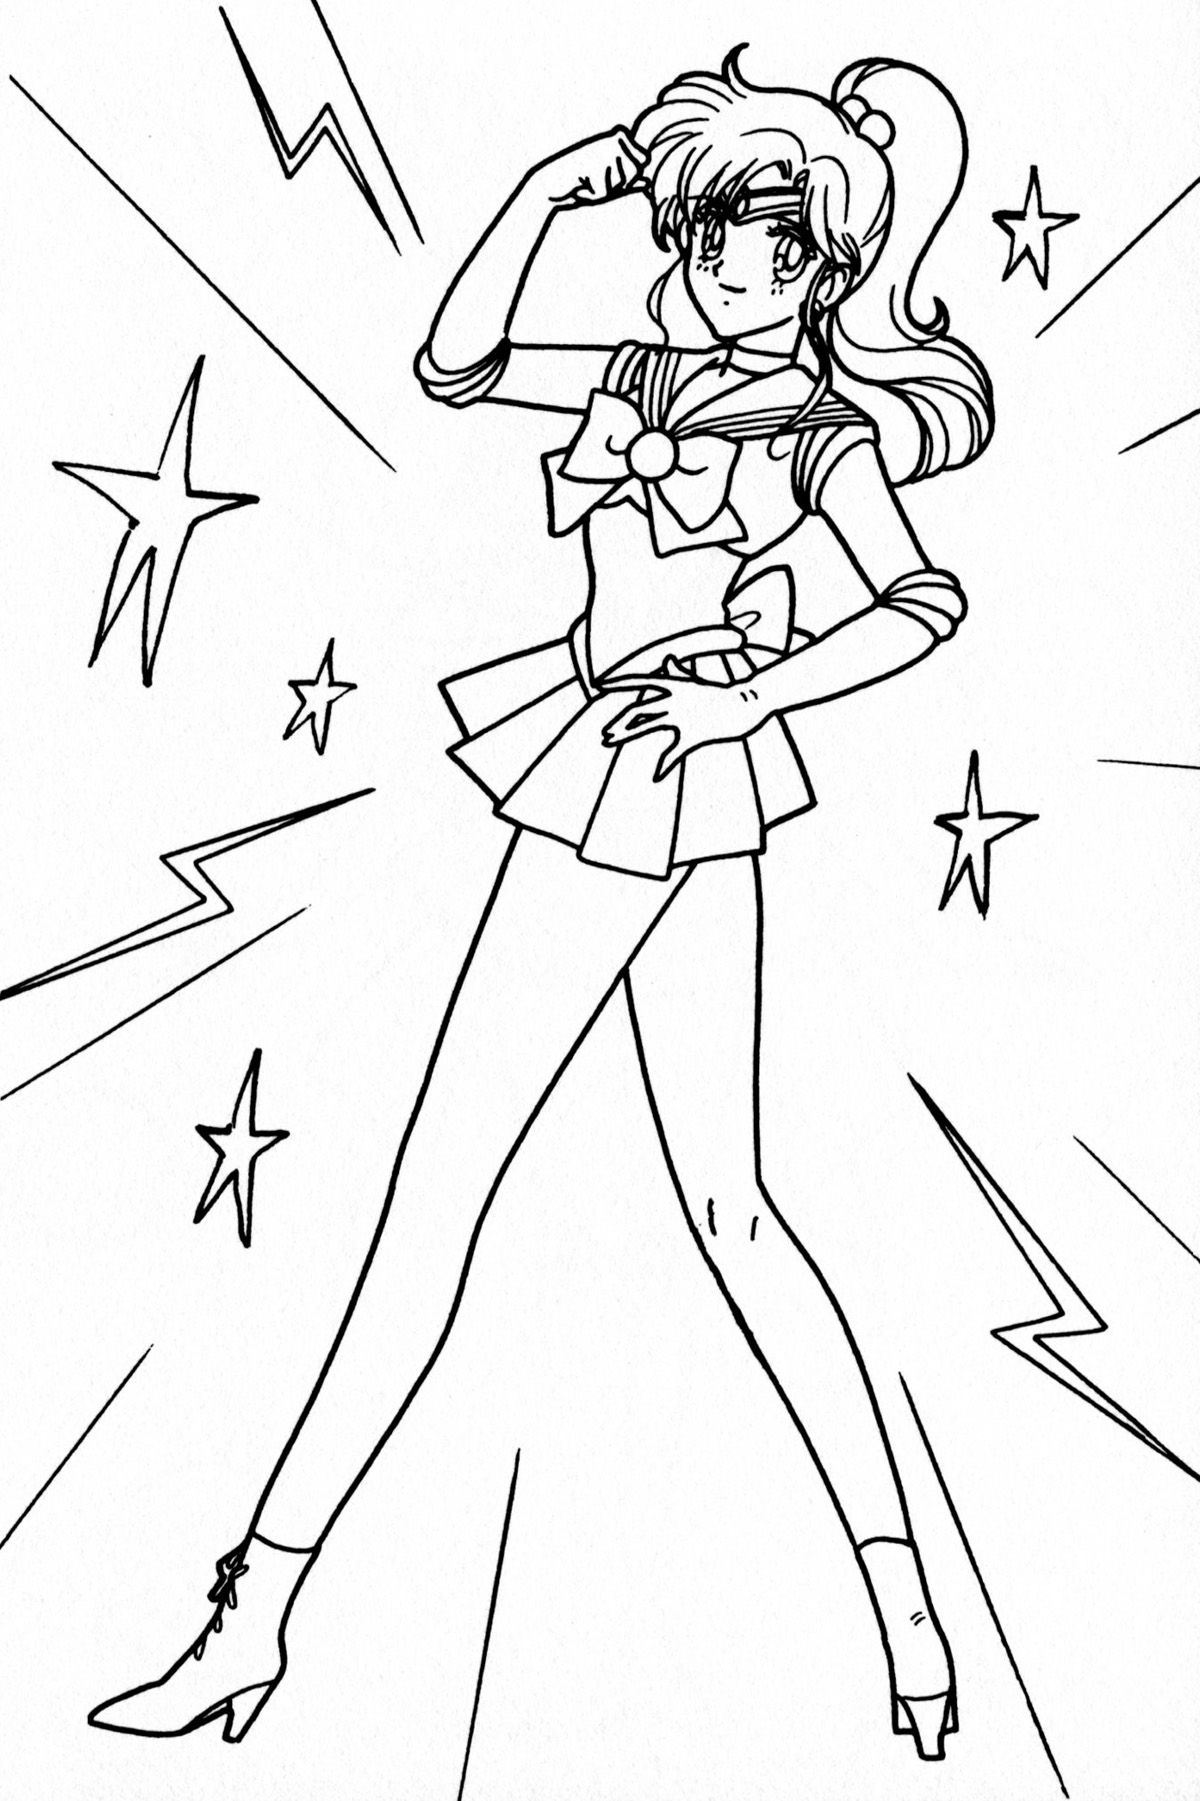 sailor moon coloring page - Google Search | coloring | Pinterest ...